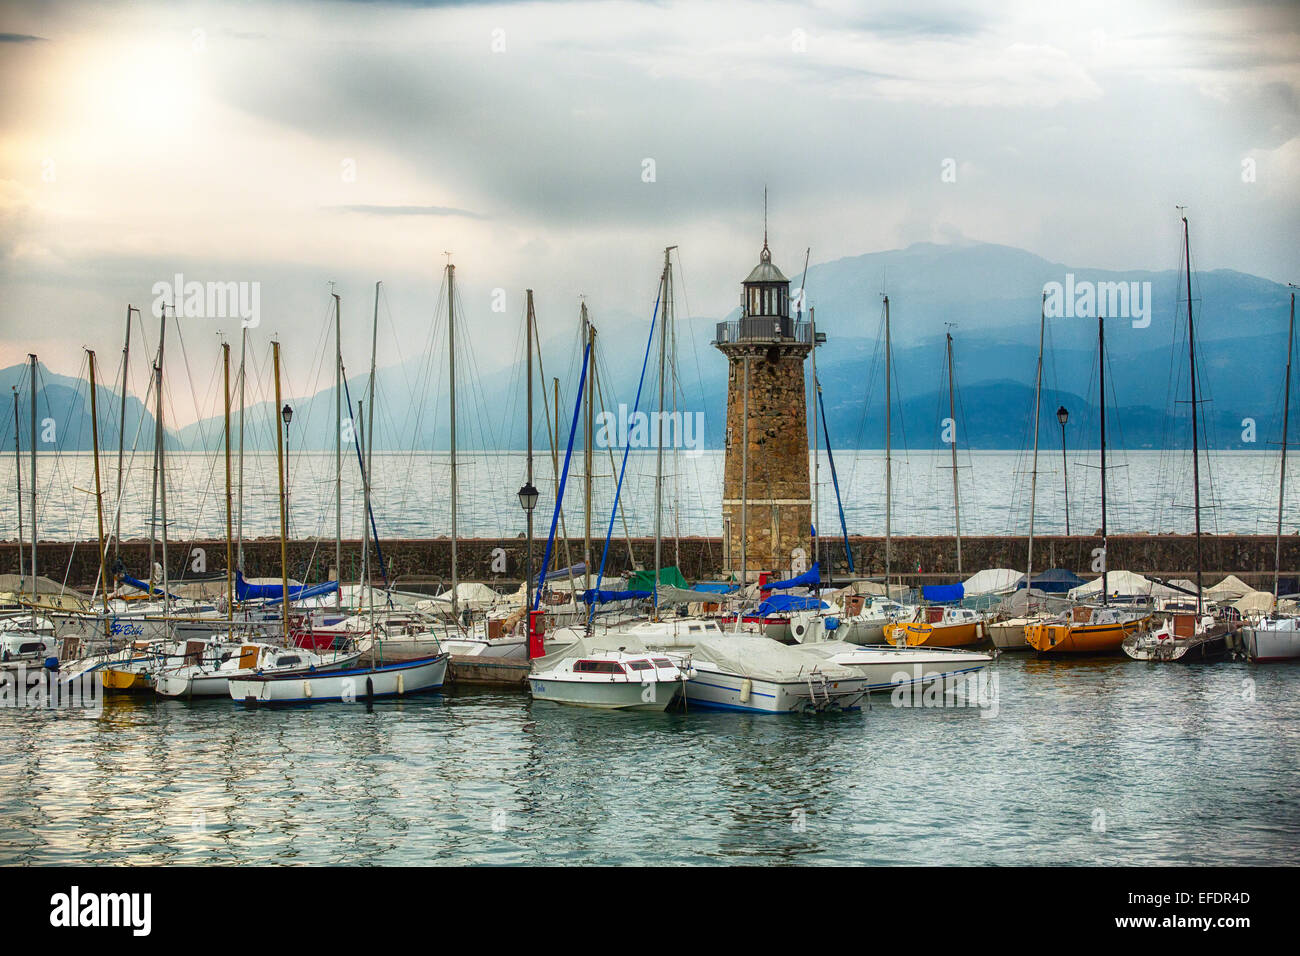 Harbor View with a Lighthouse, Desenzano, Lake Garda, Lombardy, Italy - Stock Image